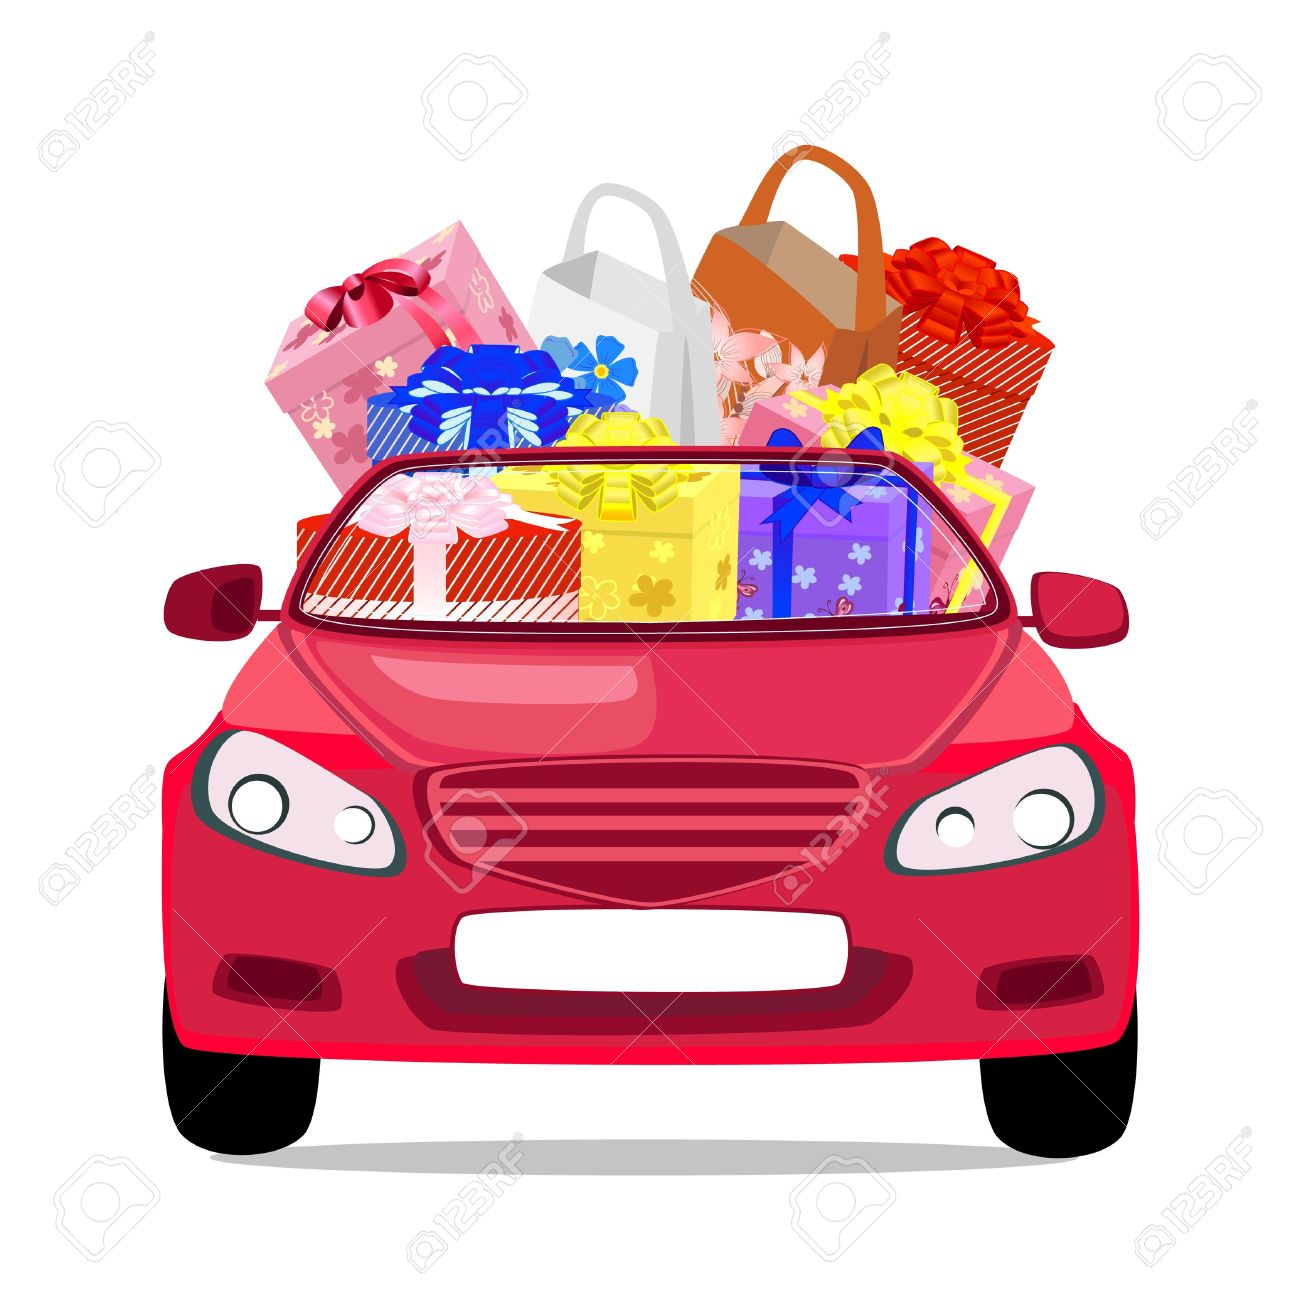 Car in shopping car clipart clipart royalty free Holiday Car With Gifts Royalty Free Cliparts, Vectors, And Stock ... clipart royalty free